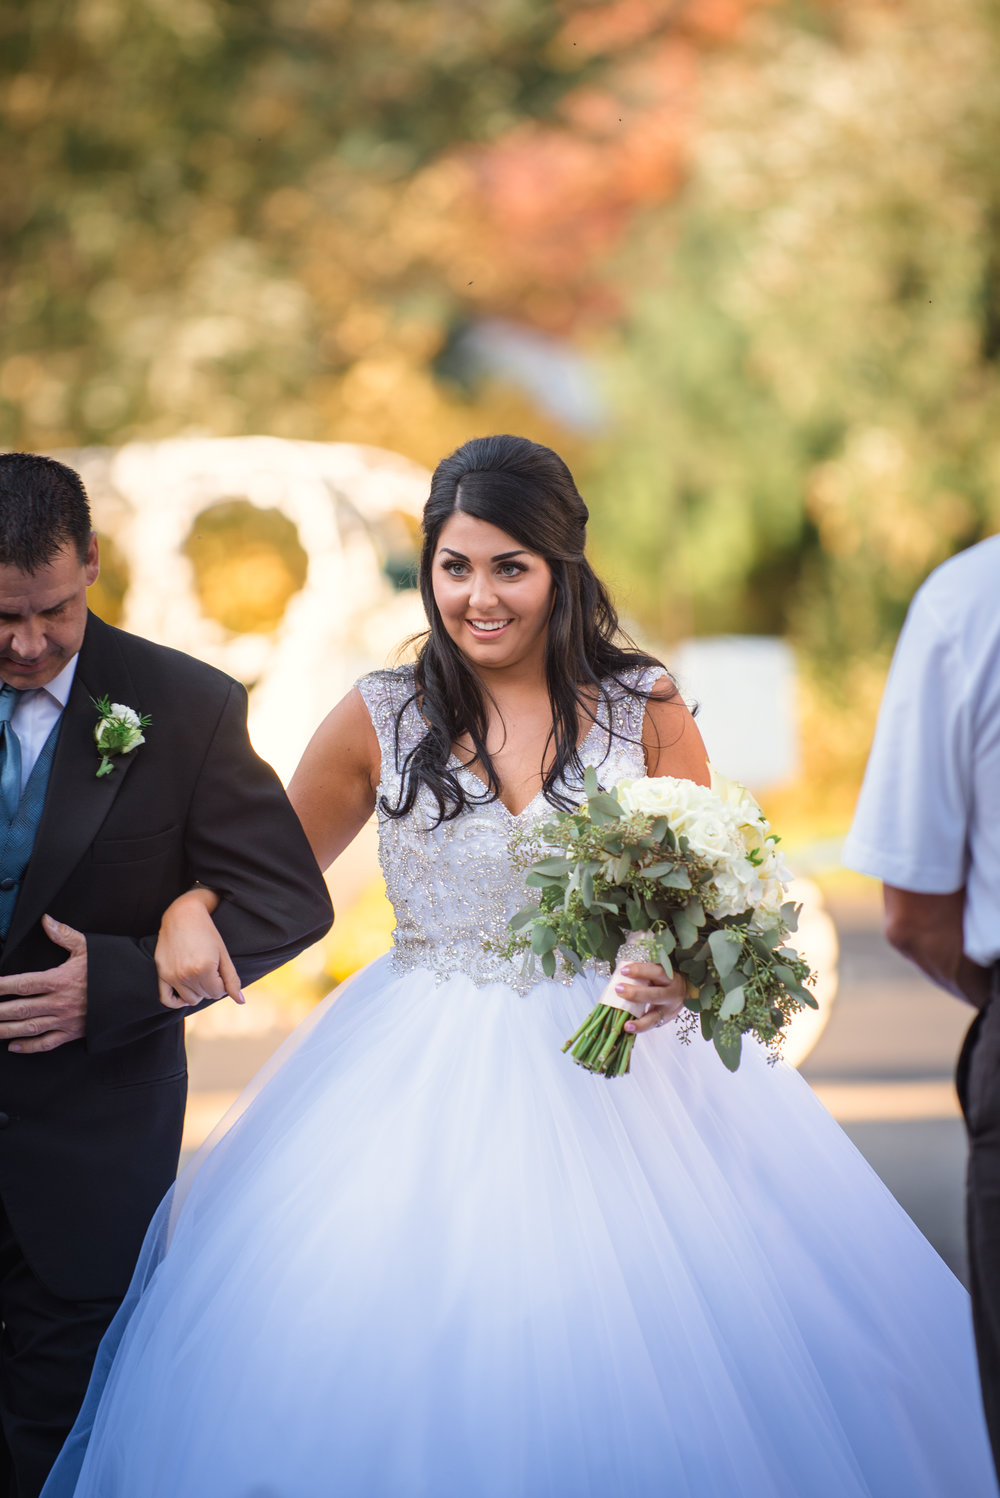 Lindsey&eanWedding (1 of 1)-11.JPG